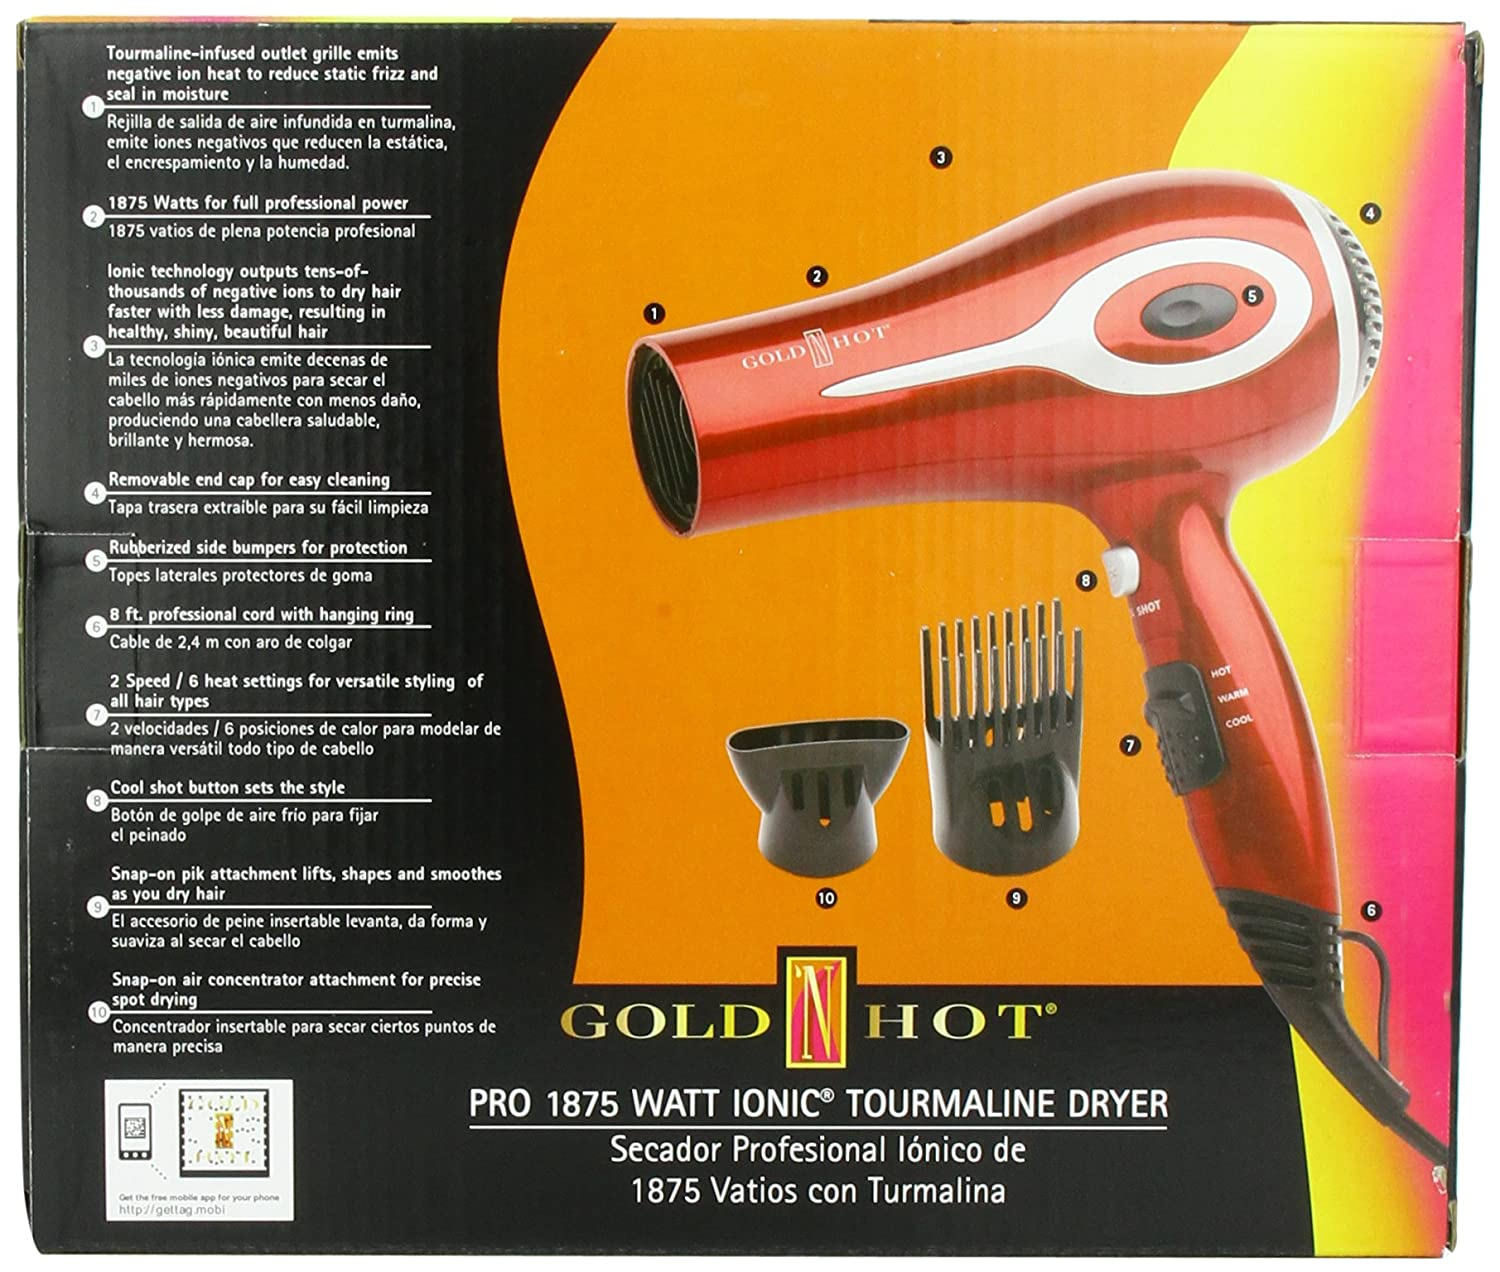 Amazon.com: Gold N Hot 1875-Watt Professional Ionic Tourmaline Dryer: Beauty